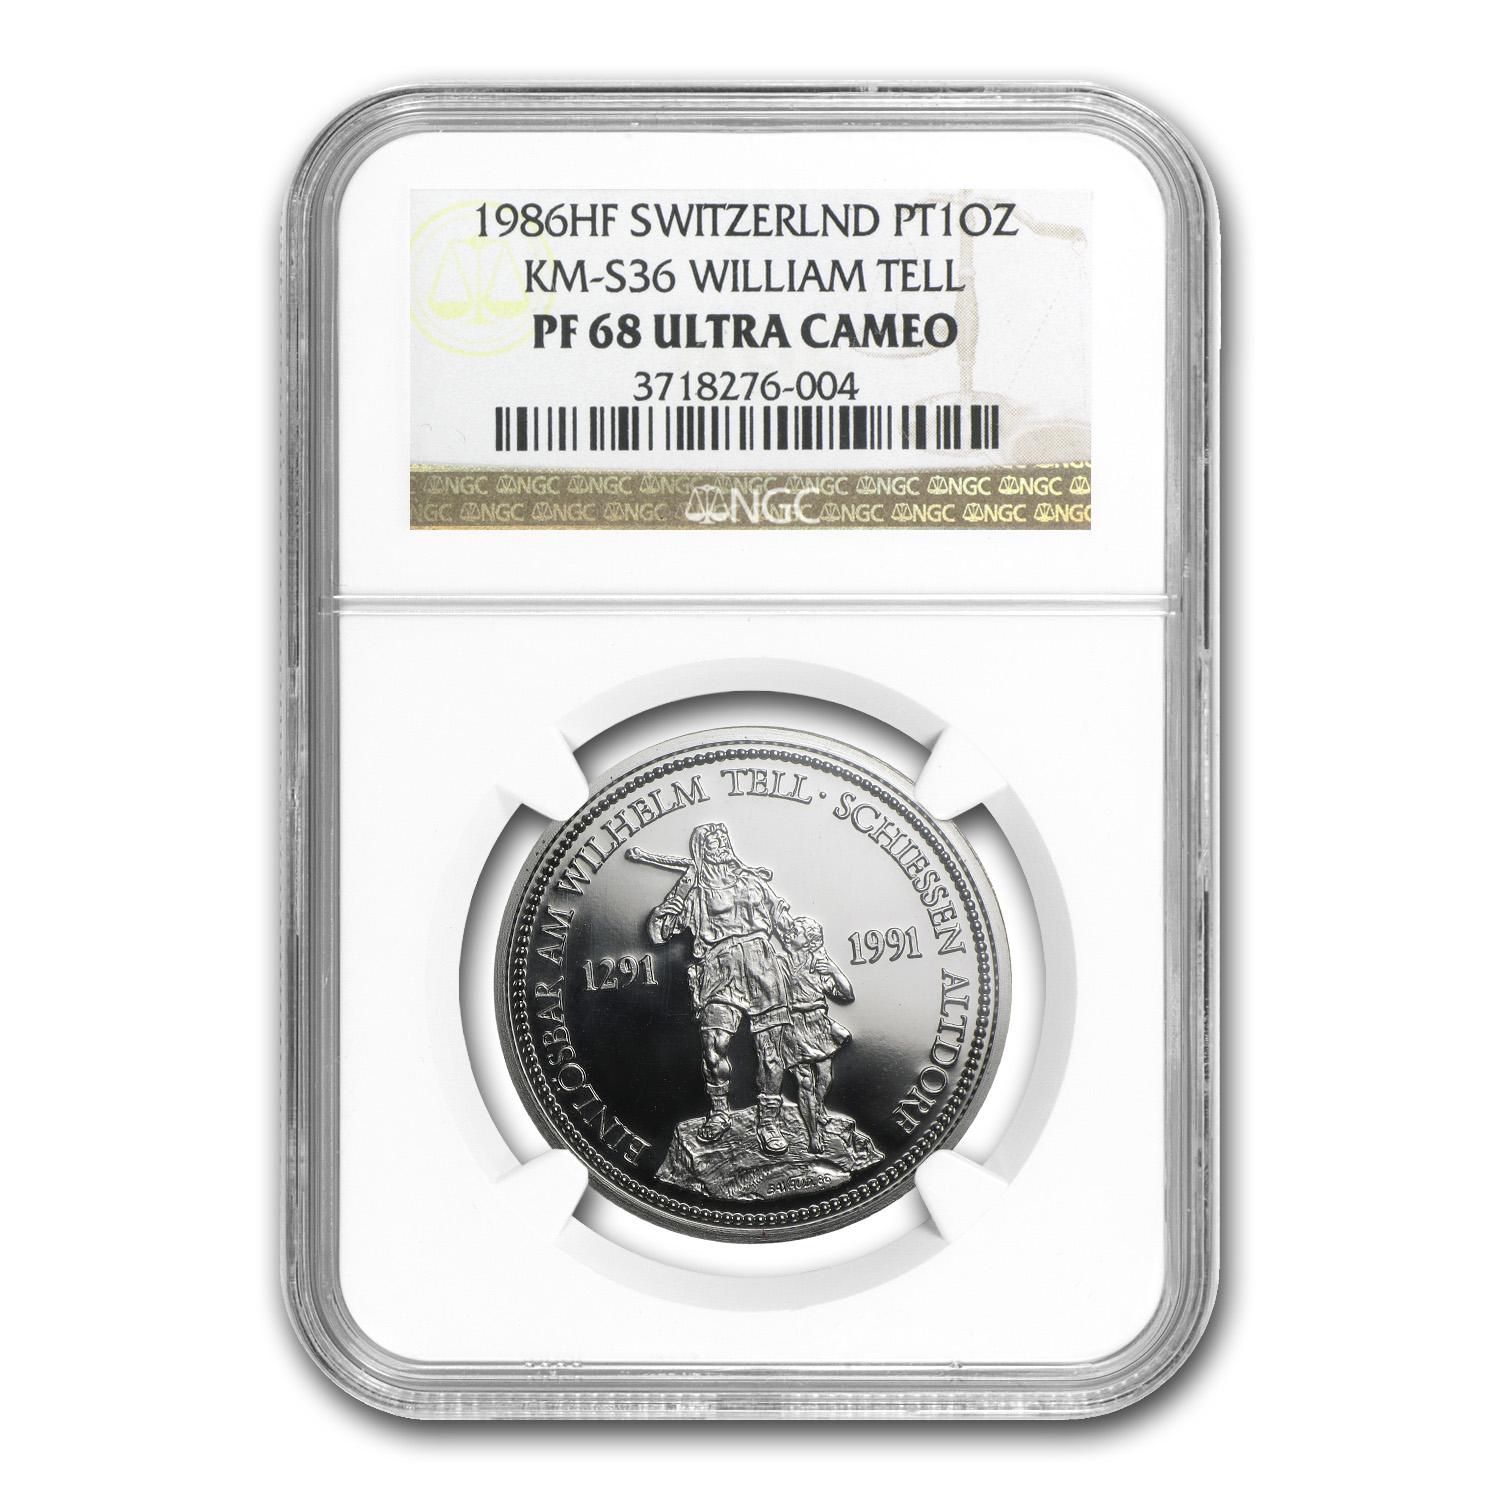 1986 1 oz Proof Swiss Platinum Shooting Thaler PF-68 NGC